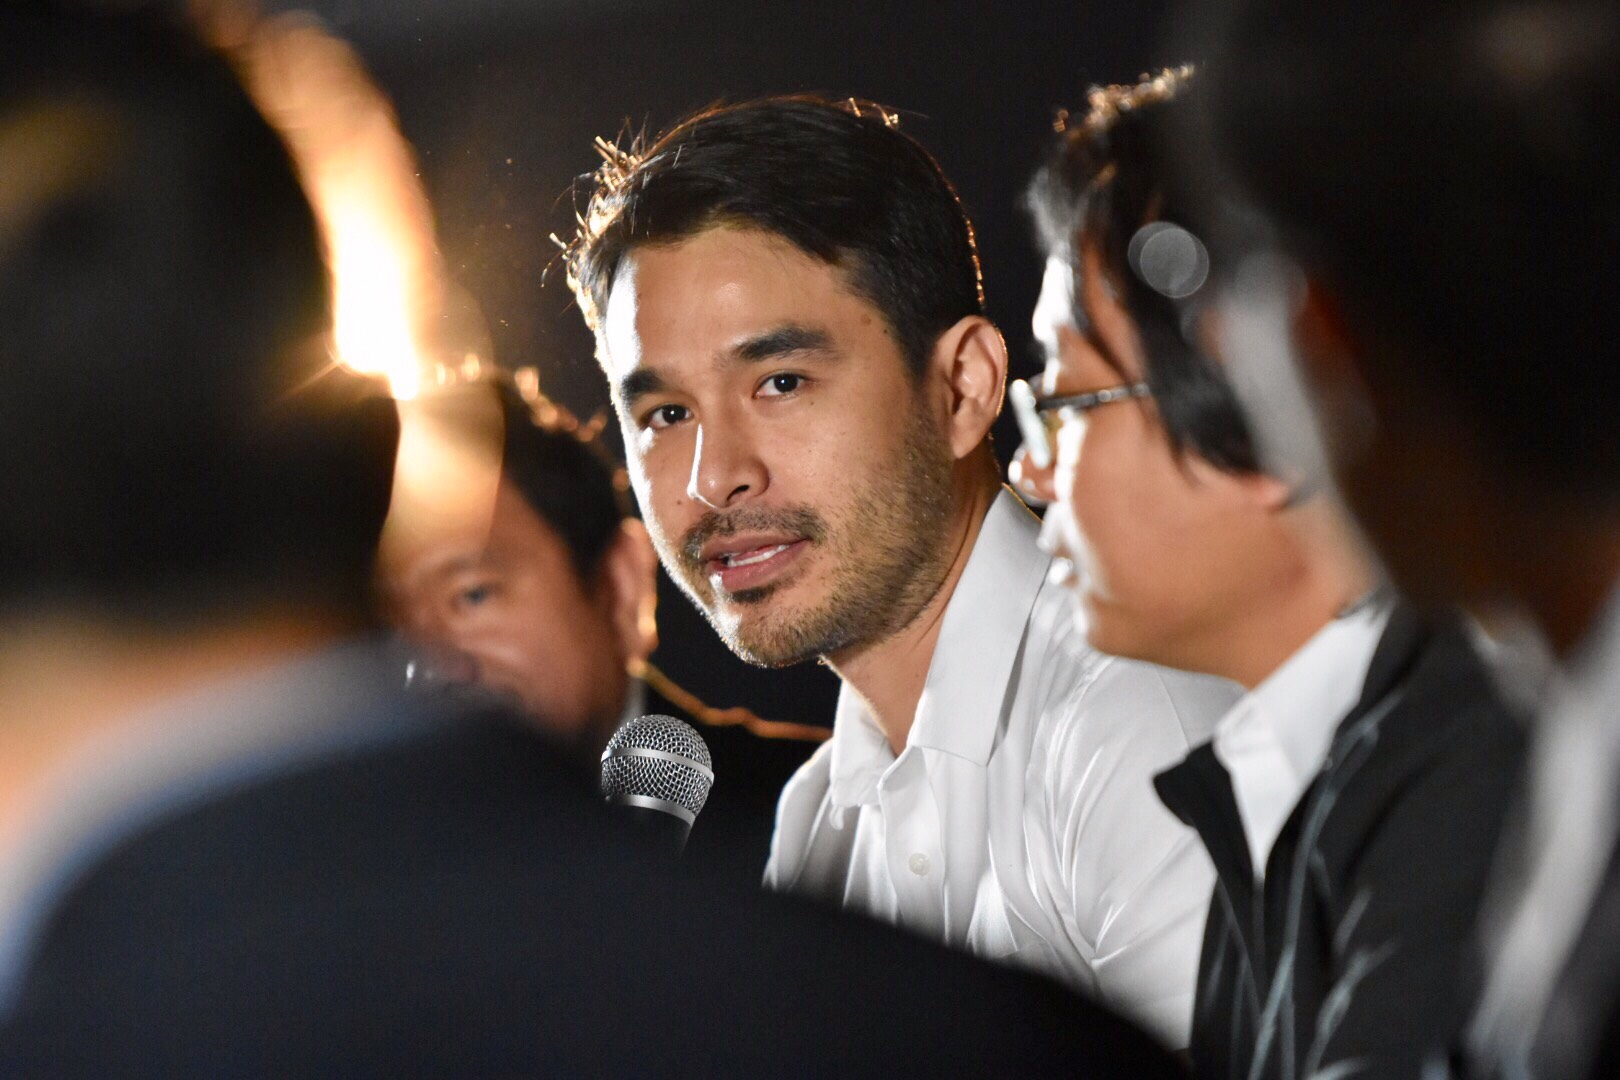 MEDIA'S ROLE. In a panel discussion, broadcast journalist Atom Araullo says that in the fight against climate change, journalists have the responsibility not only to learn how to connect the dots but also to convey the bigger picture